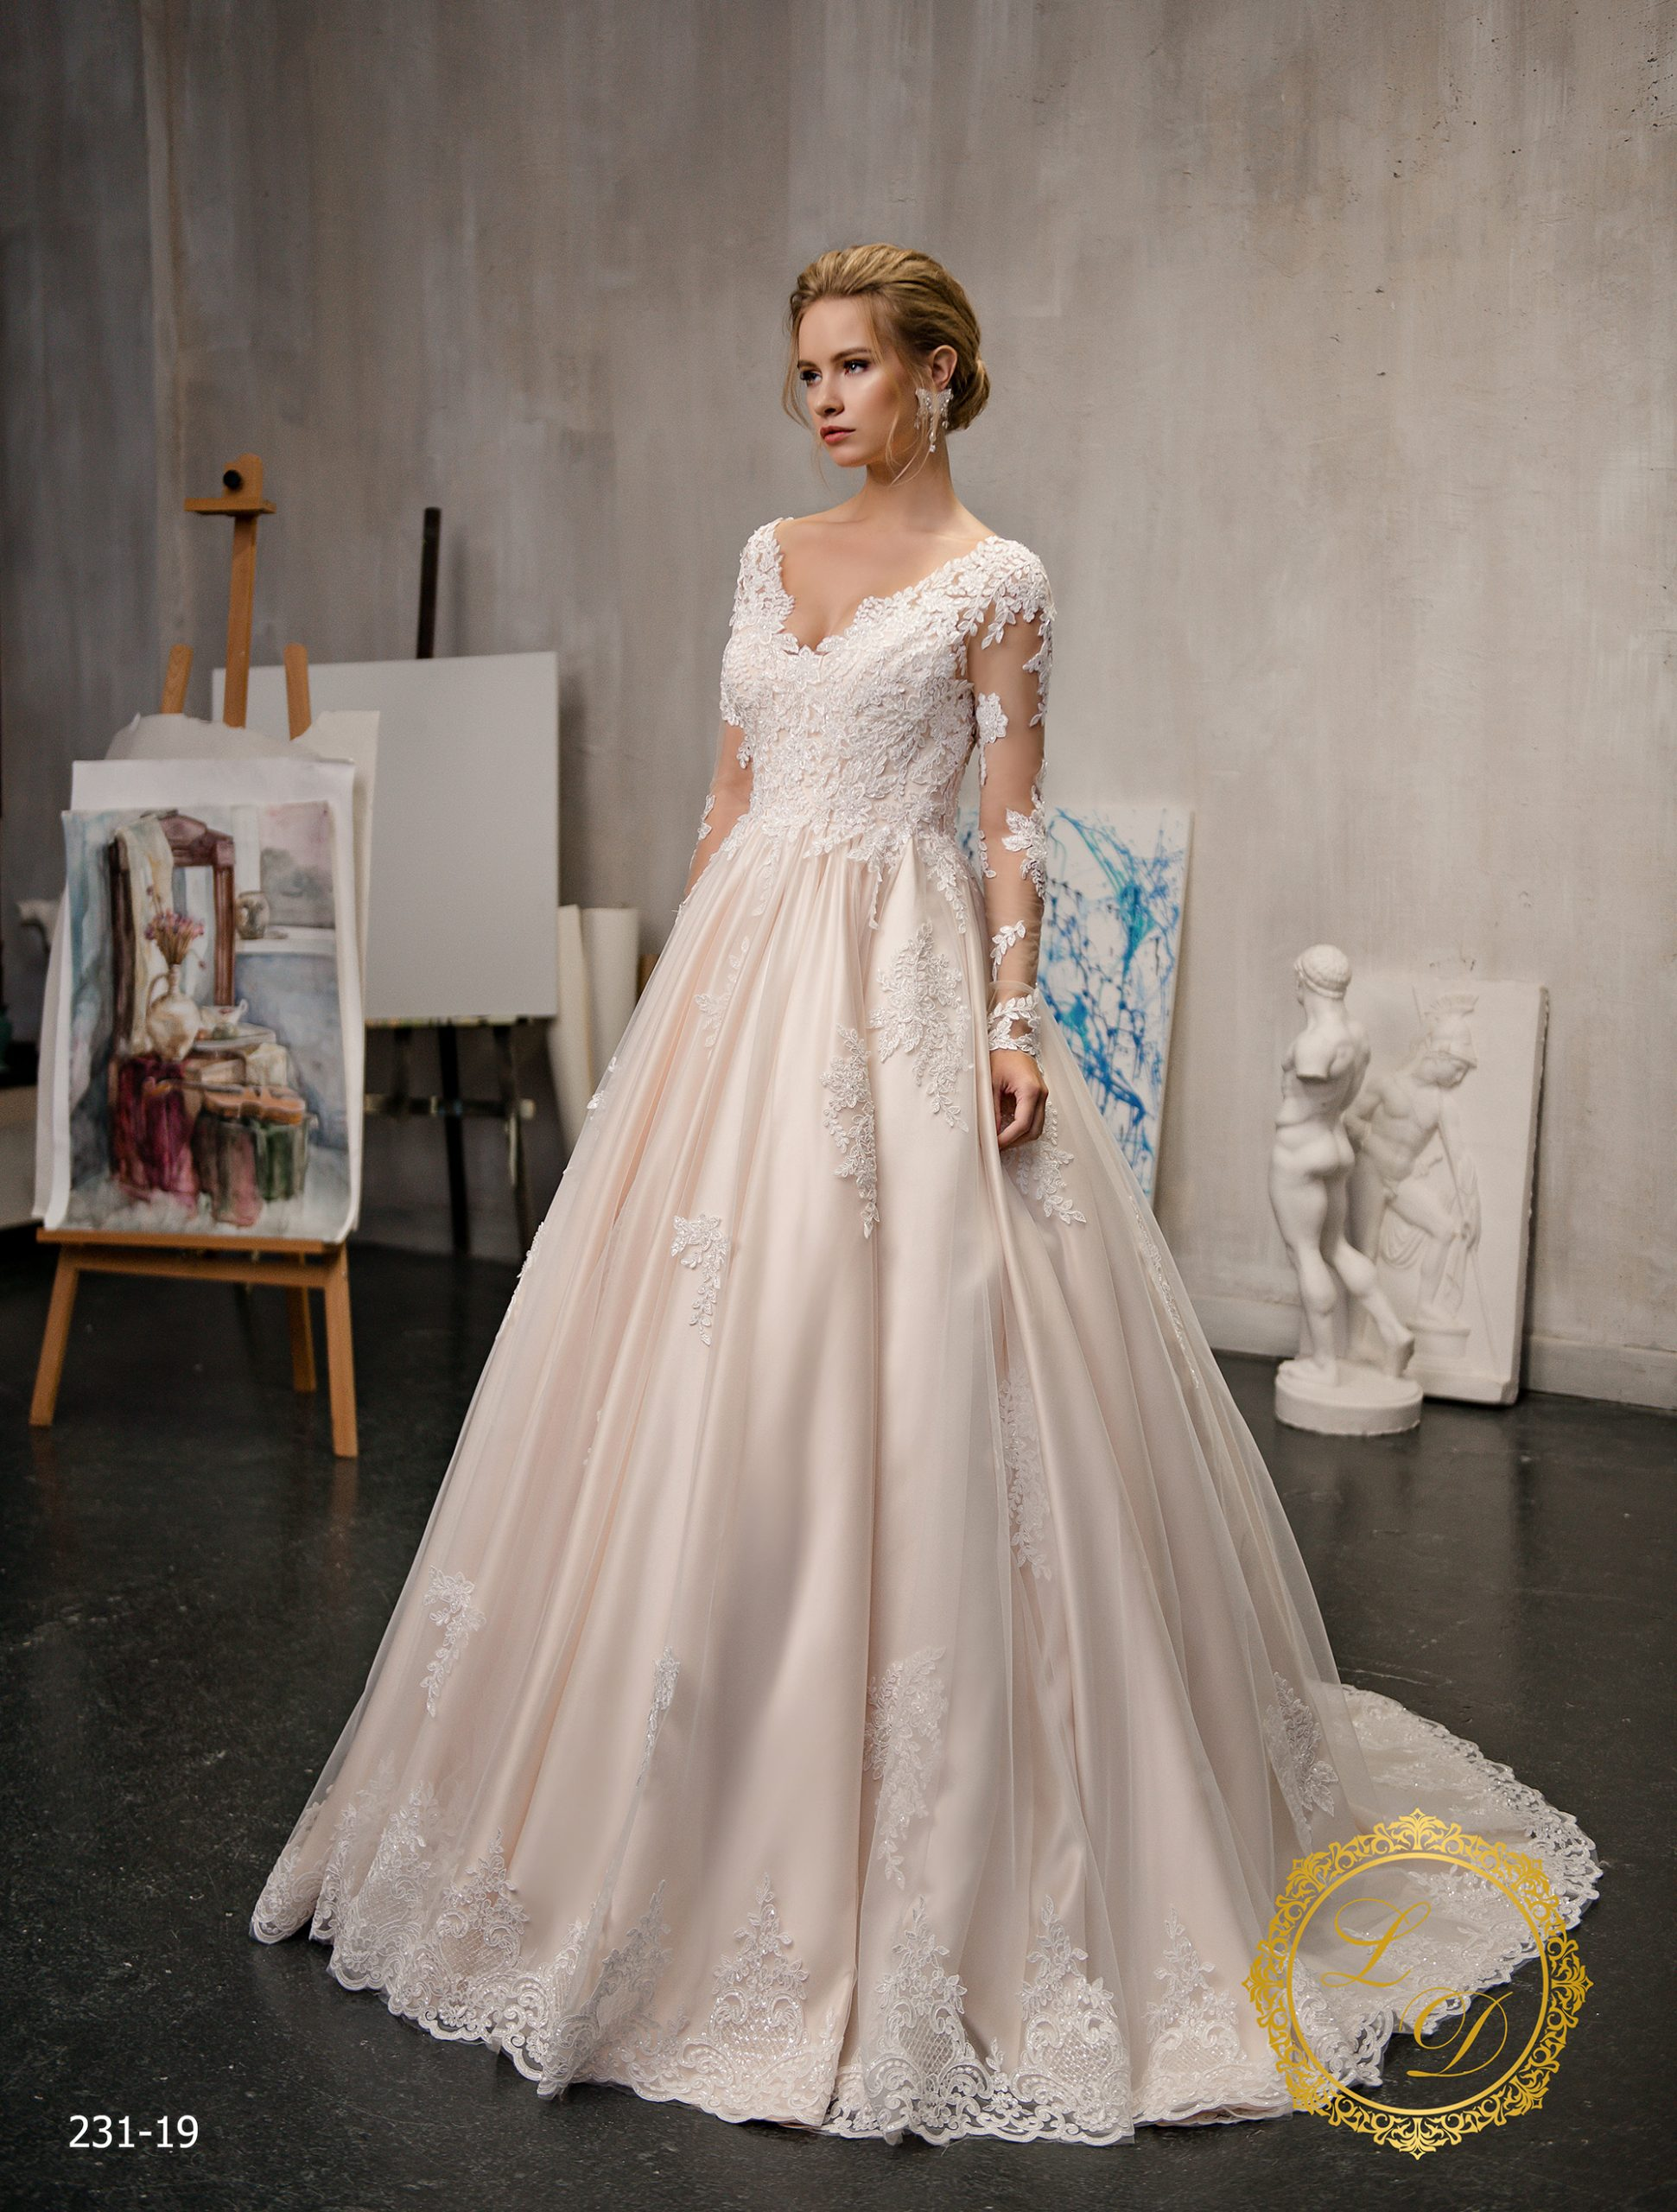 wedding-dress231-19-1